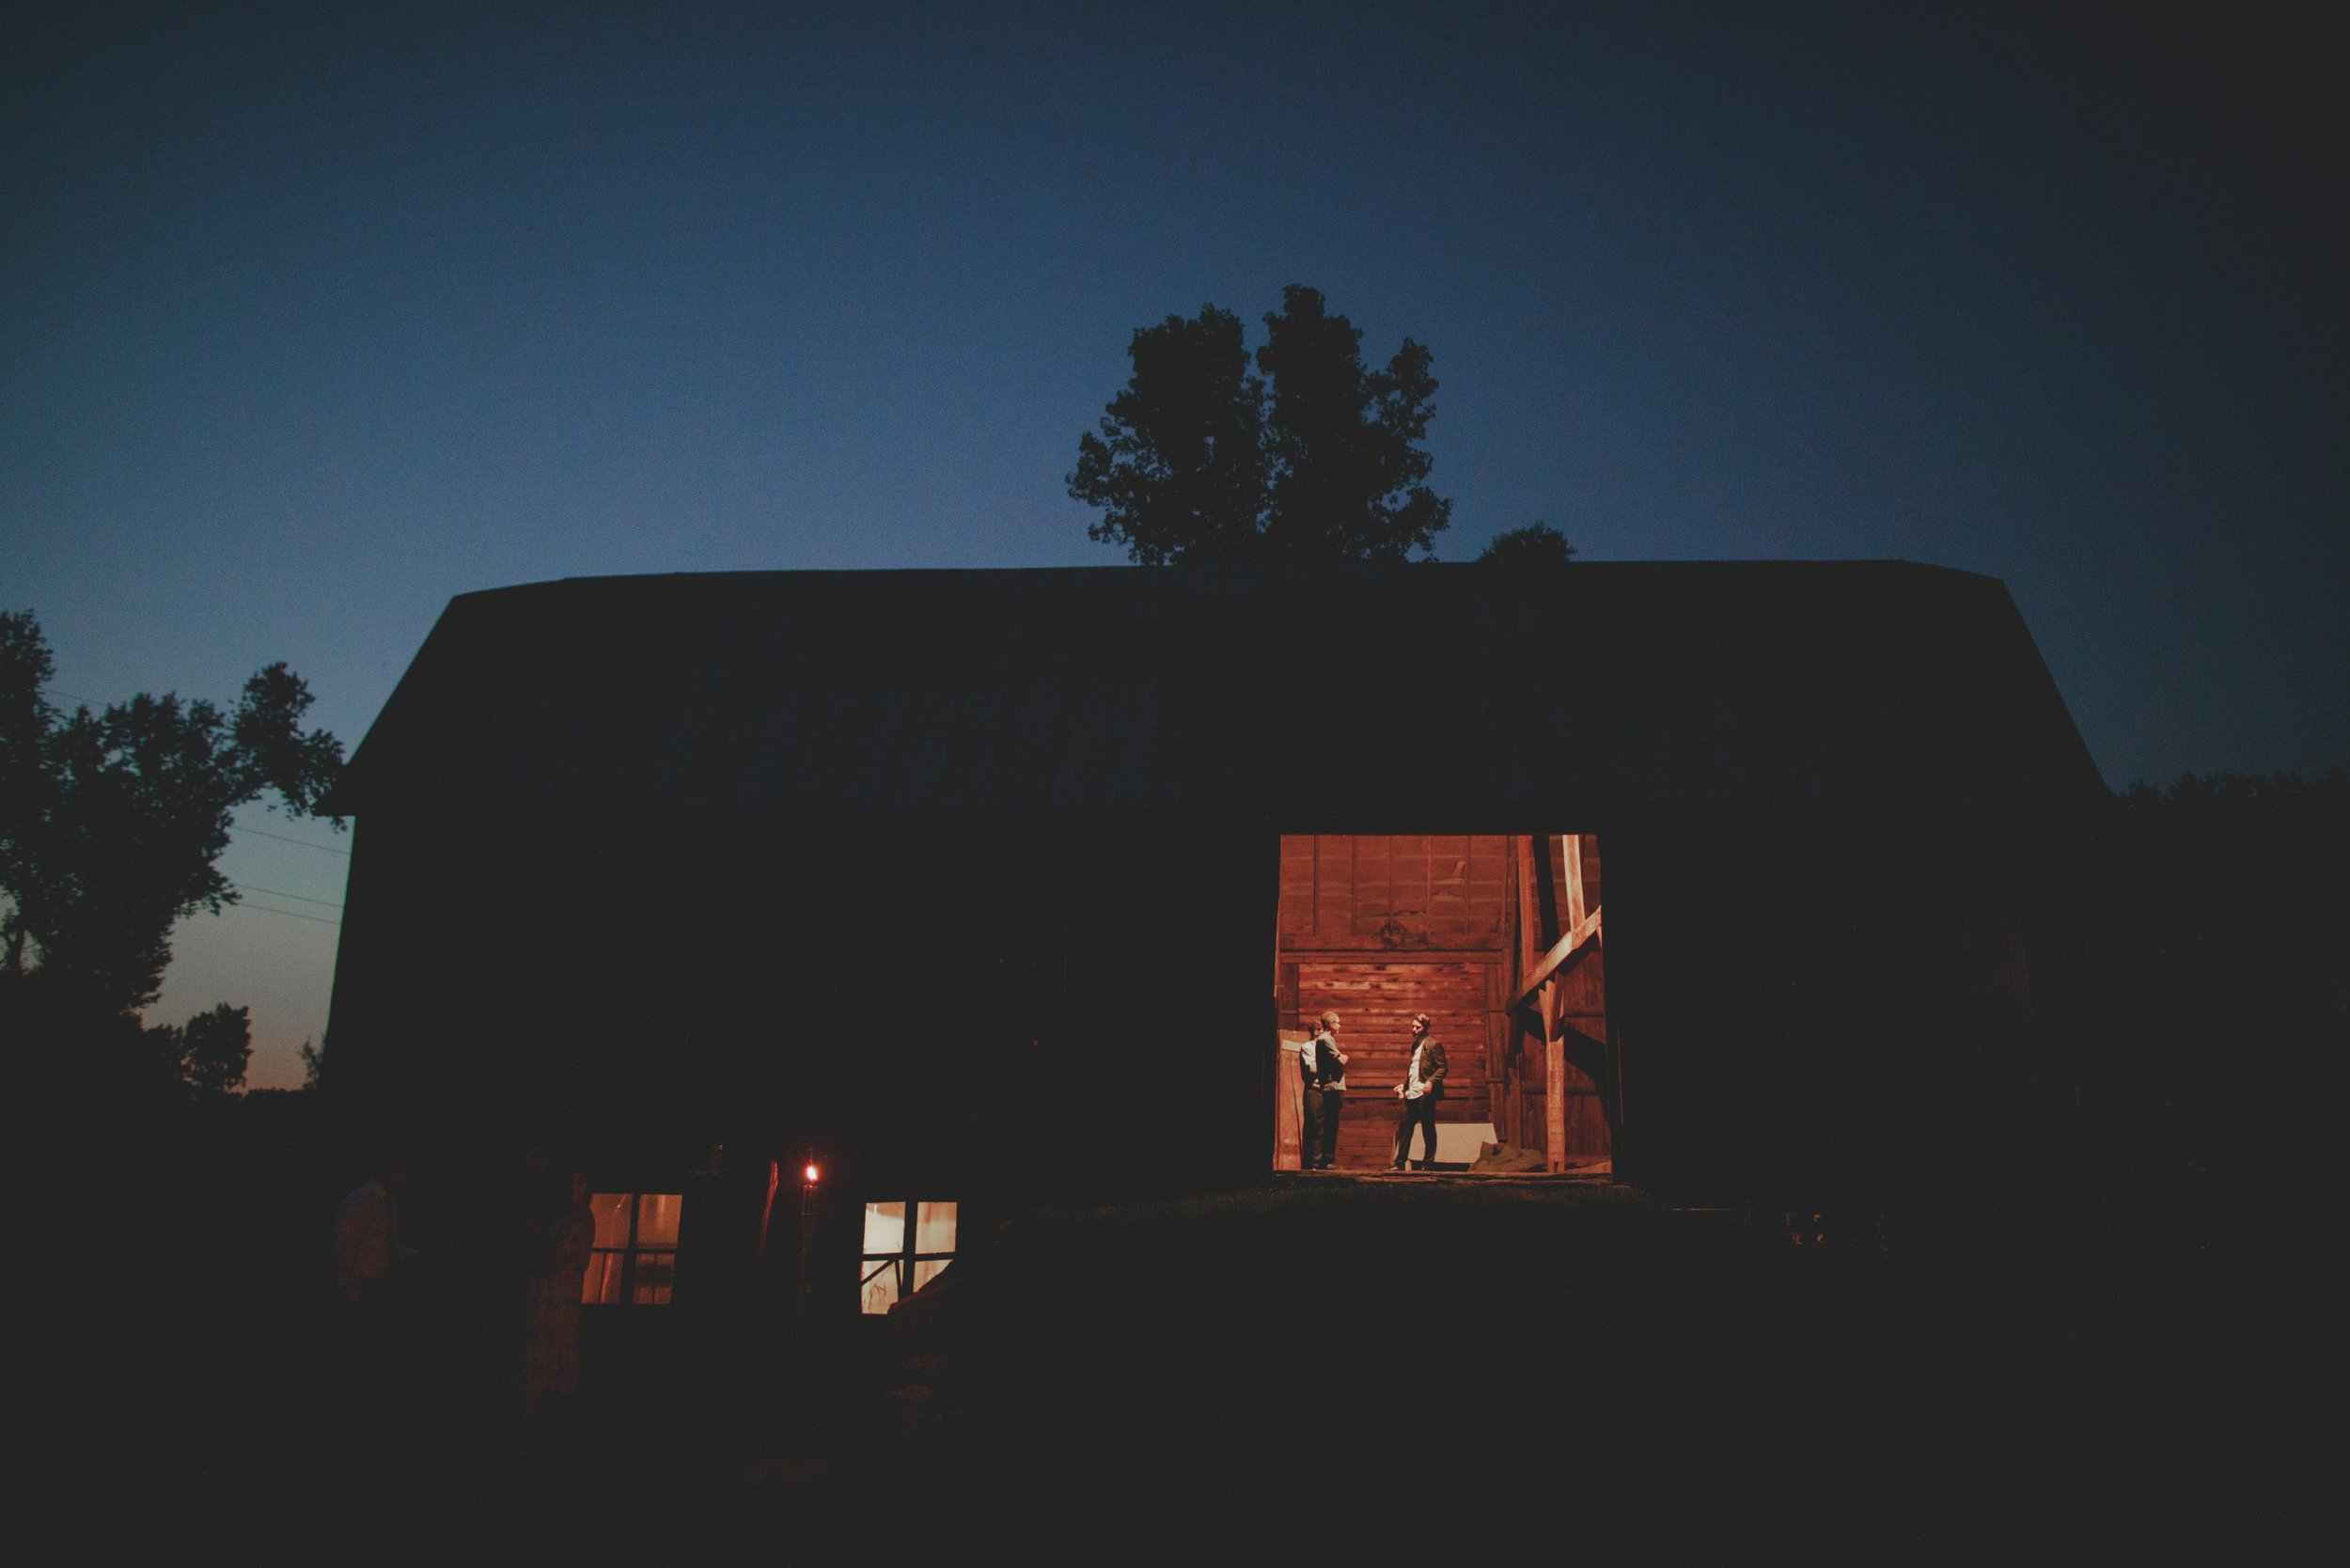 amanda_vanvels_grand_rapids_farm_barn_wedding_137.jpg